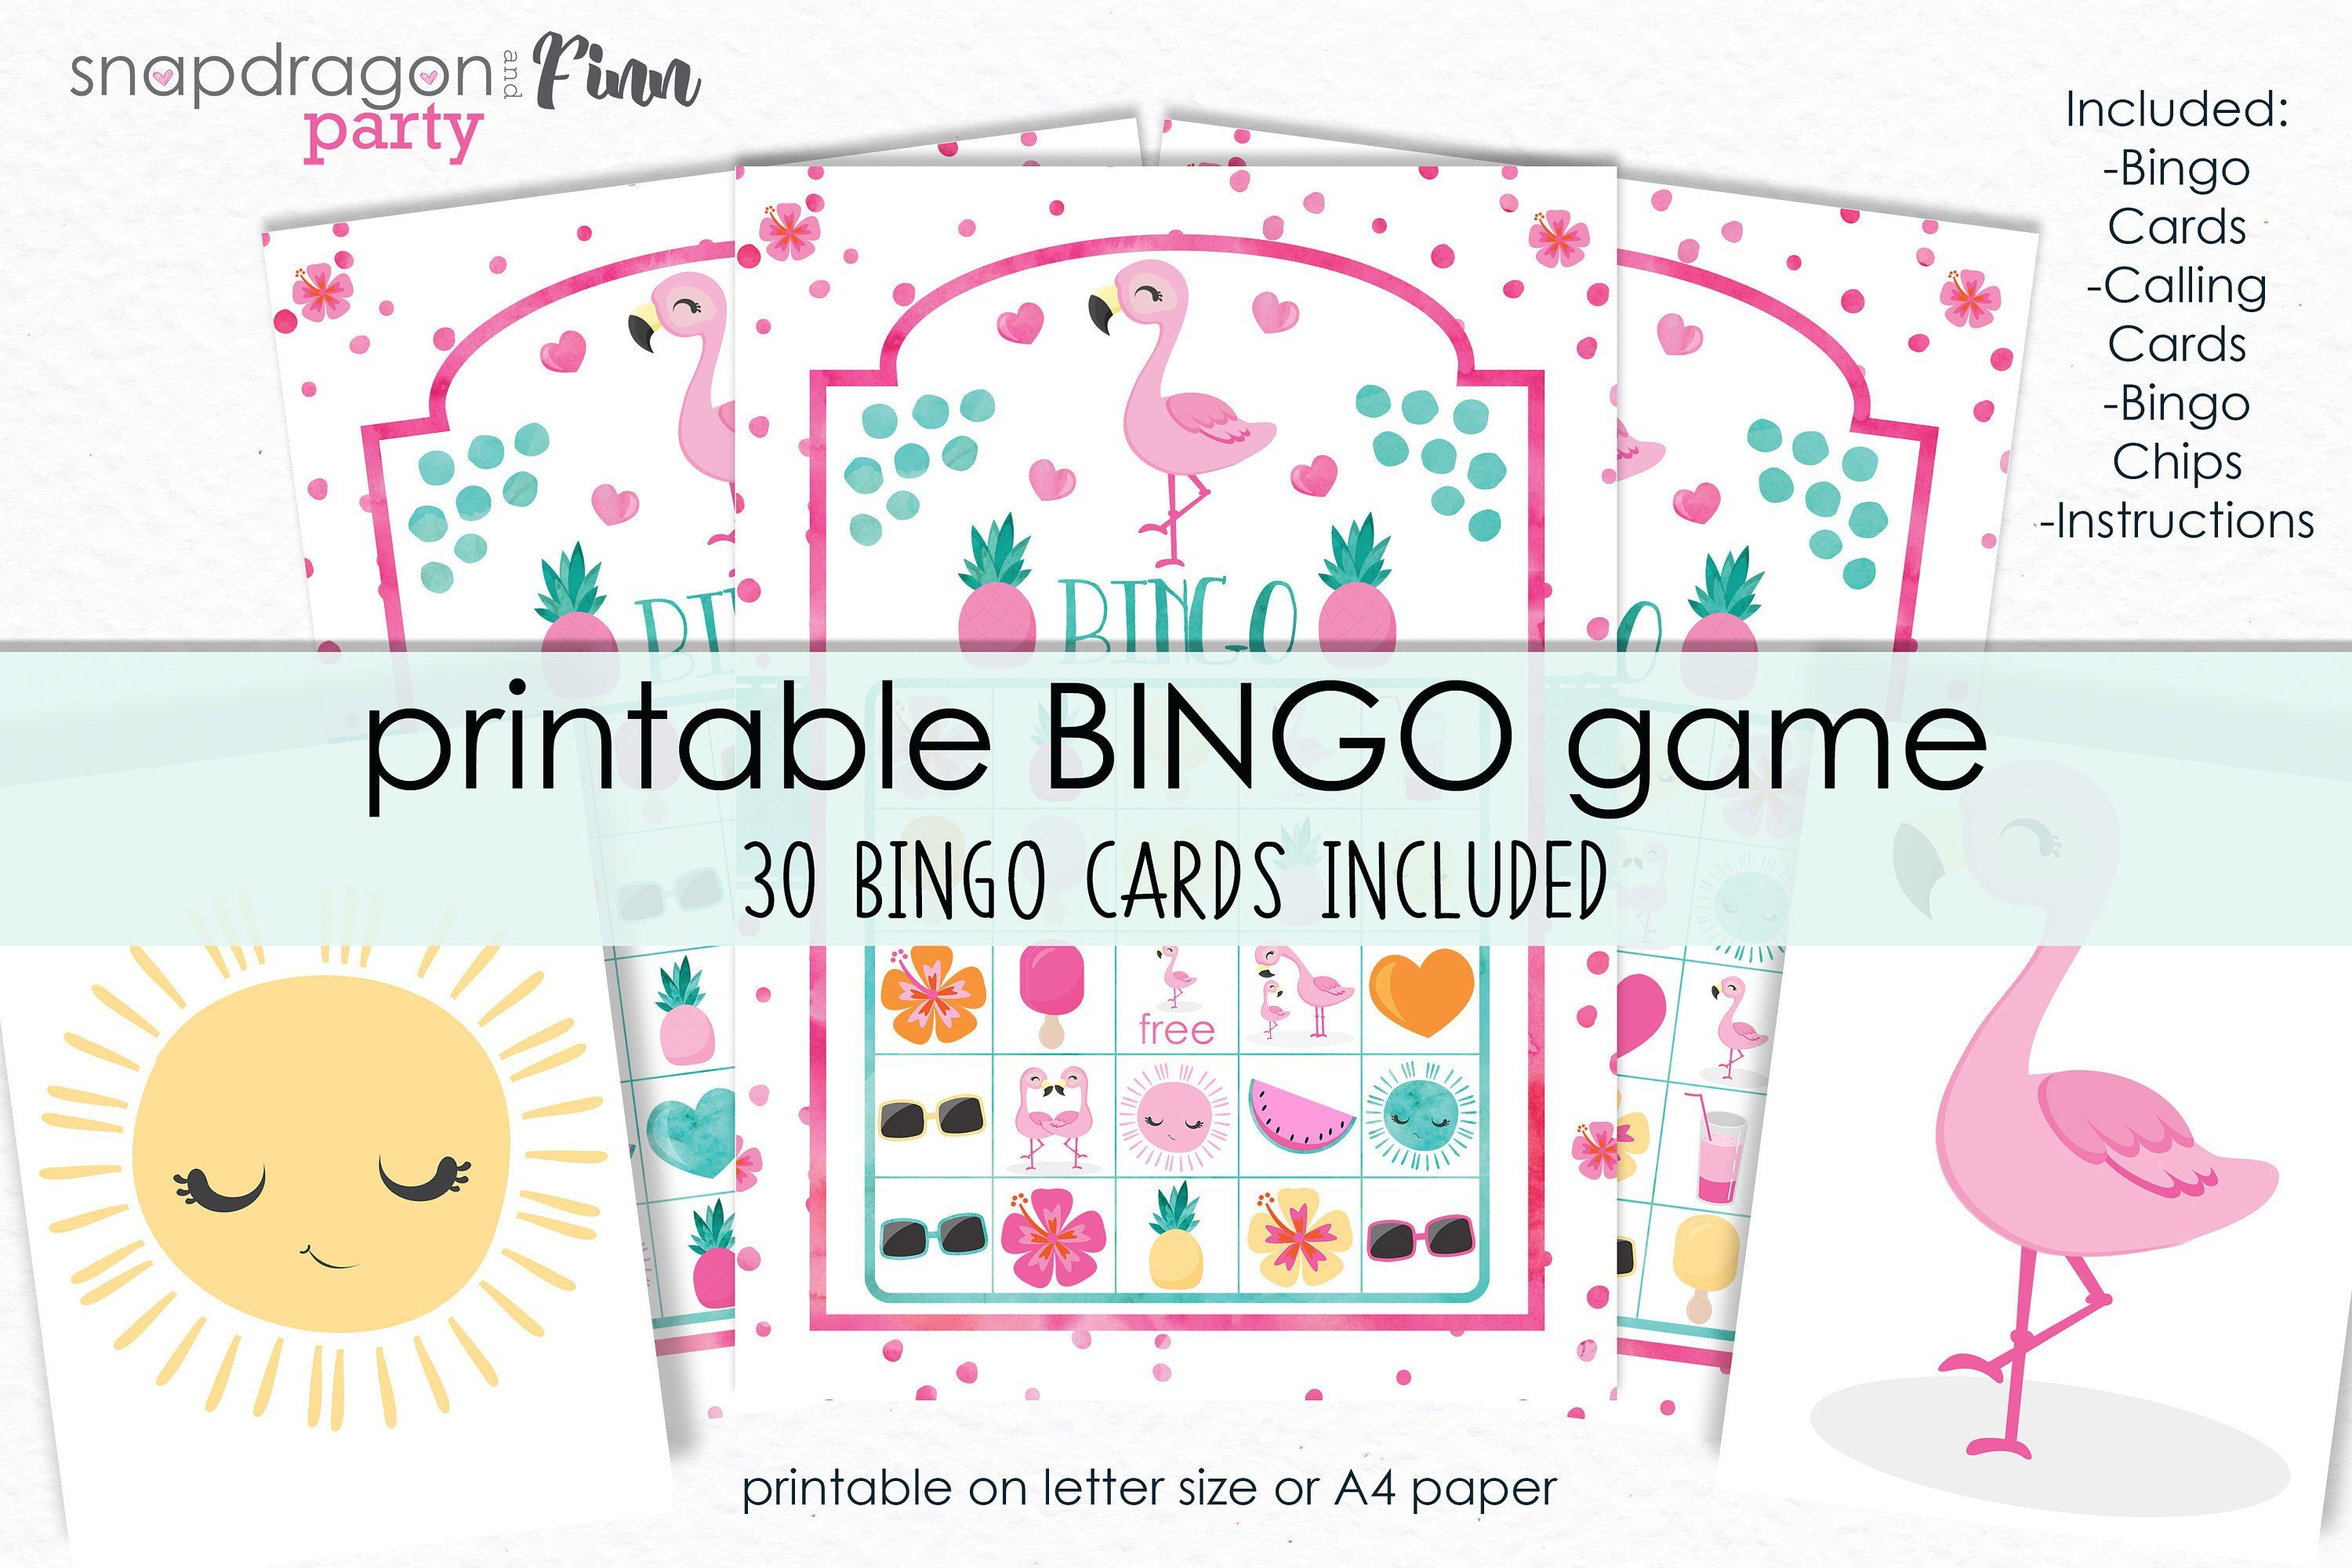 photo regarding Bingo Chips Printable titled Flamingo Bingo Printable Activity - Printable Flamingo Birthday